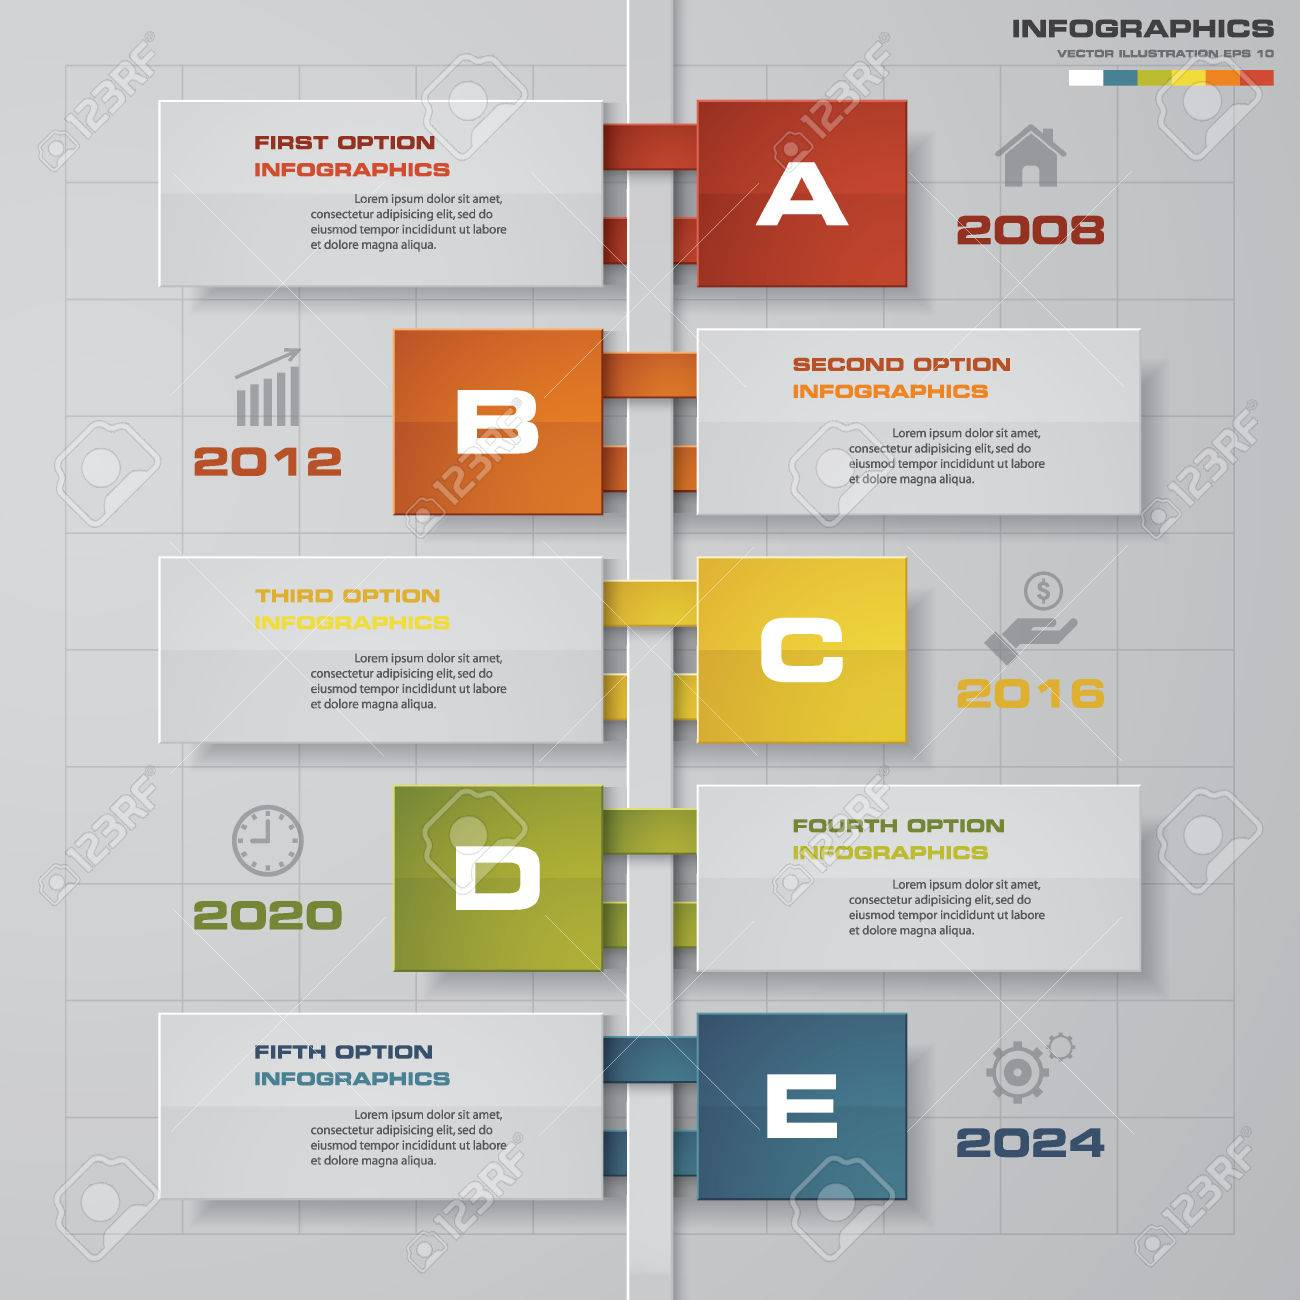 Timeline Infographic 5 Steps Design Template. Can Be Used For ...